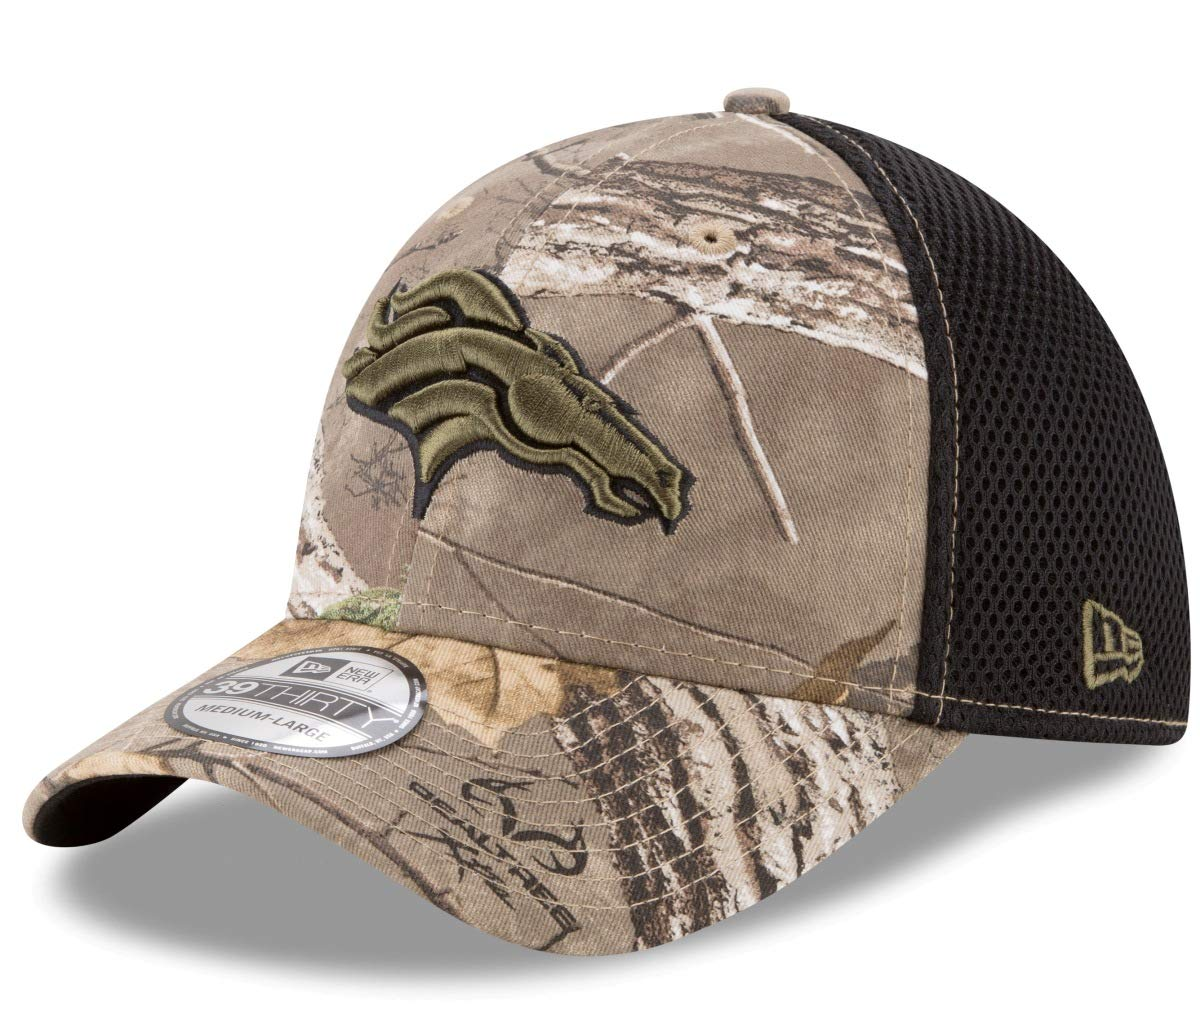 Amazon.com   New Era Denver Broncos NFL 39THIRTY Realtree Neo Flex Fit Camo  Hat   Sports   Outdoors 21d02333787